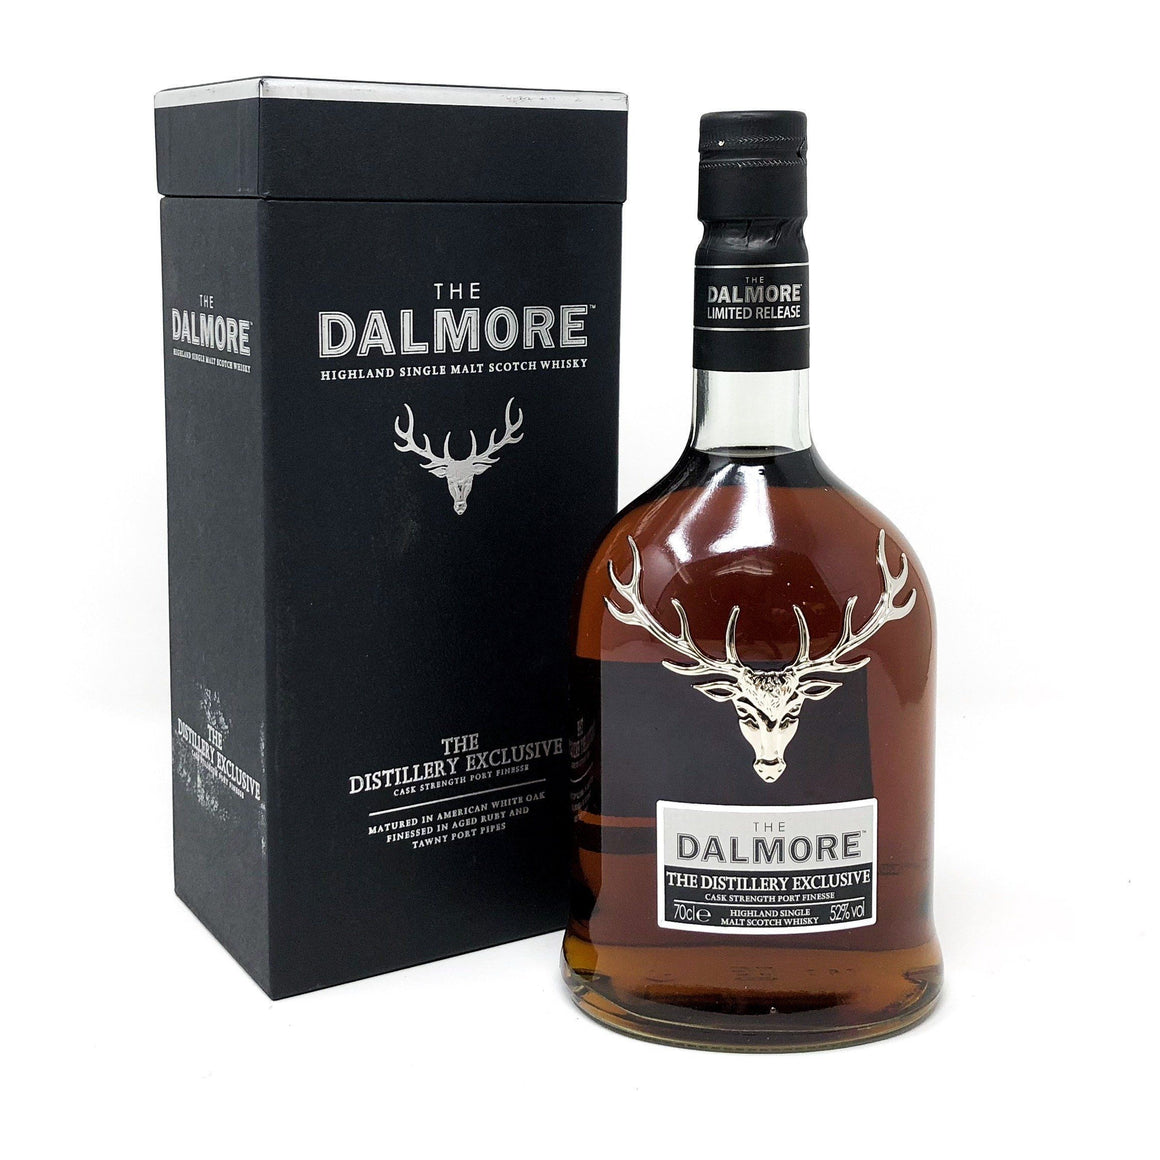 Whisky - Dalmore Distillery Exclusive Port Finesse